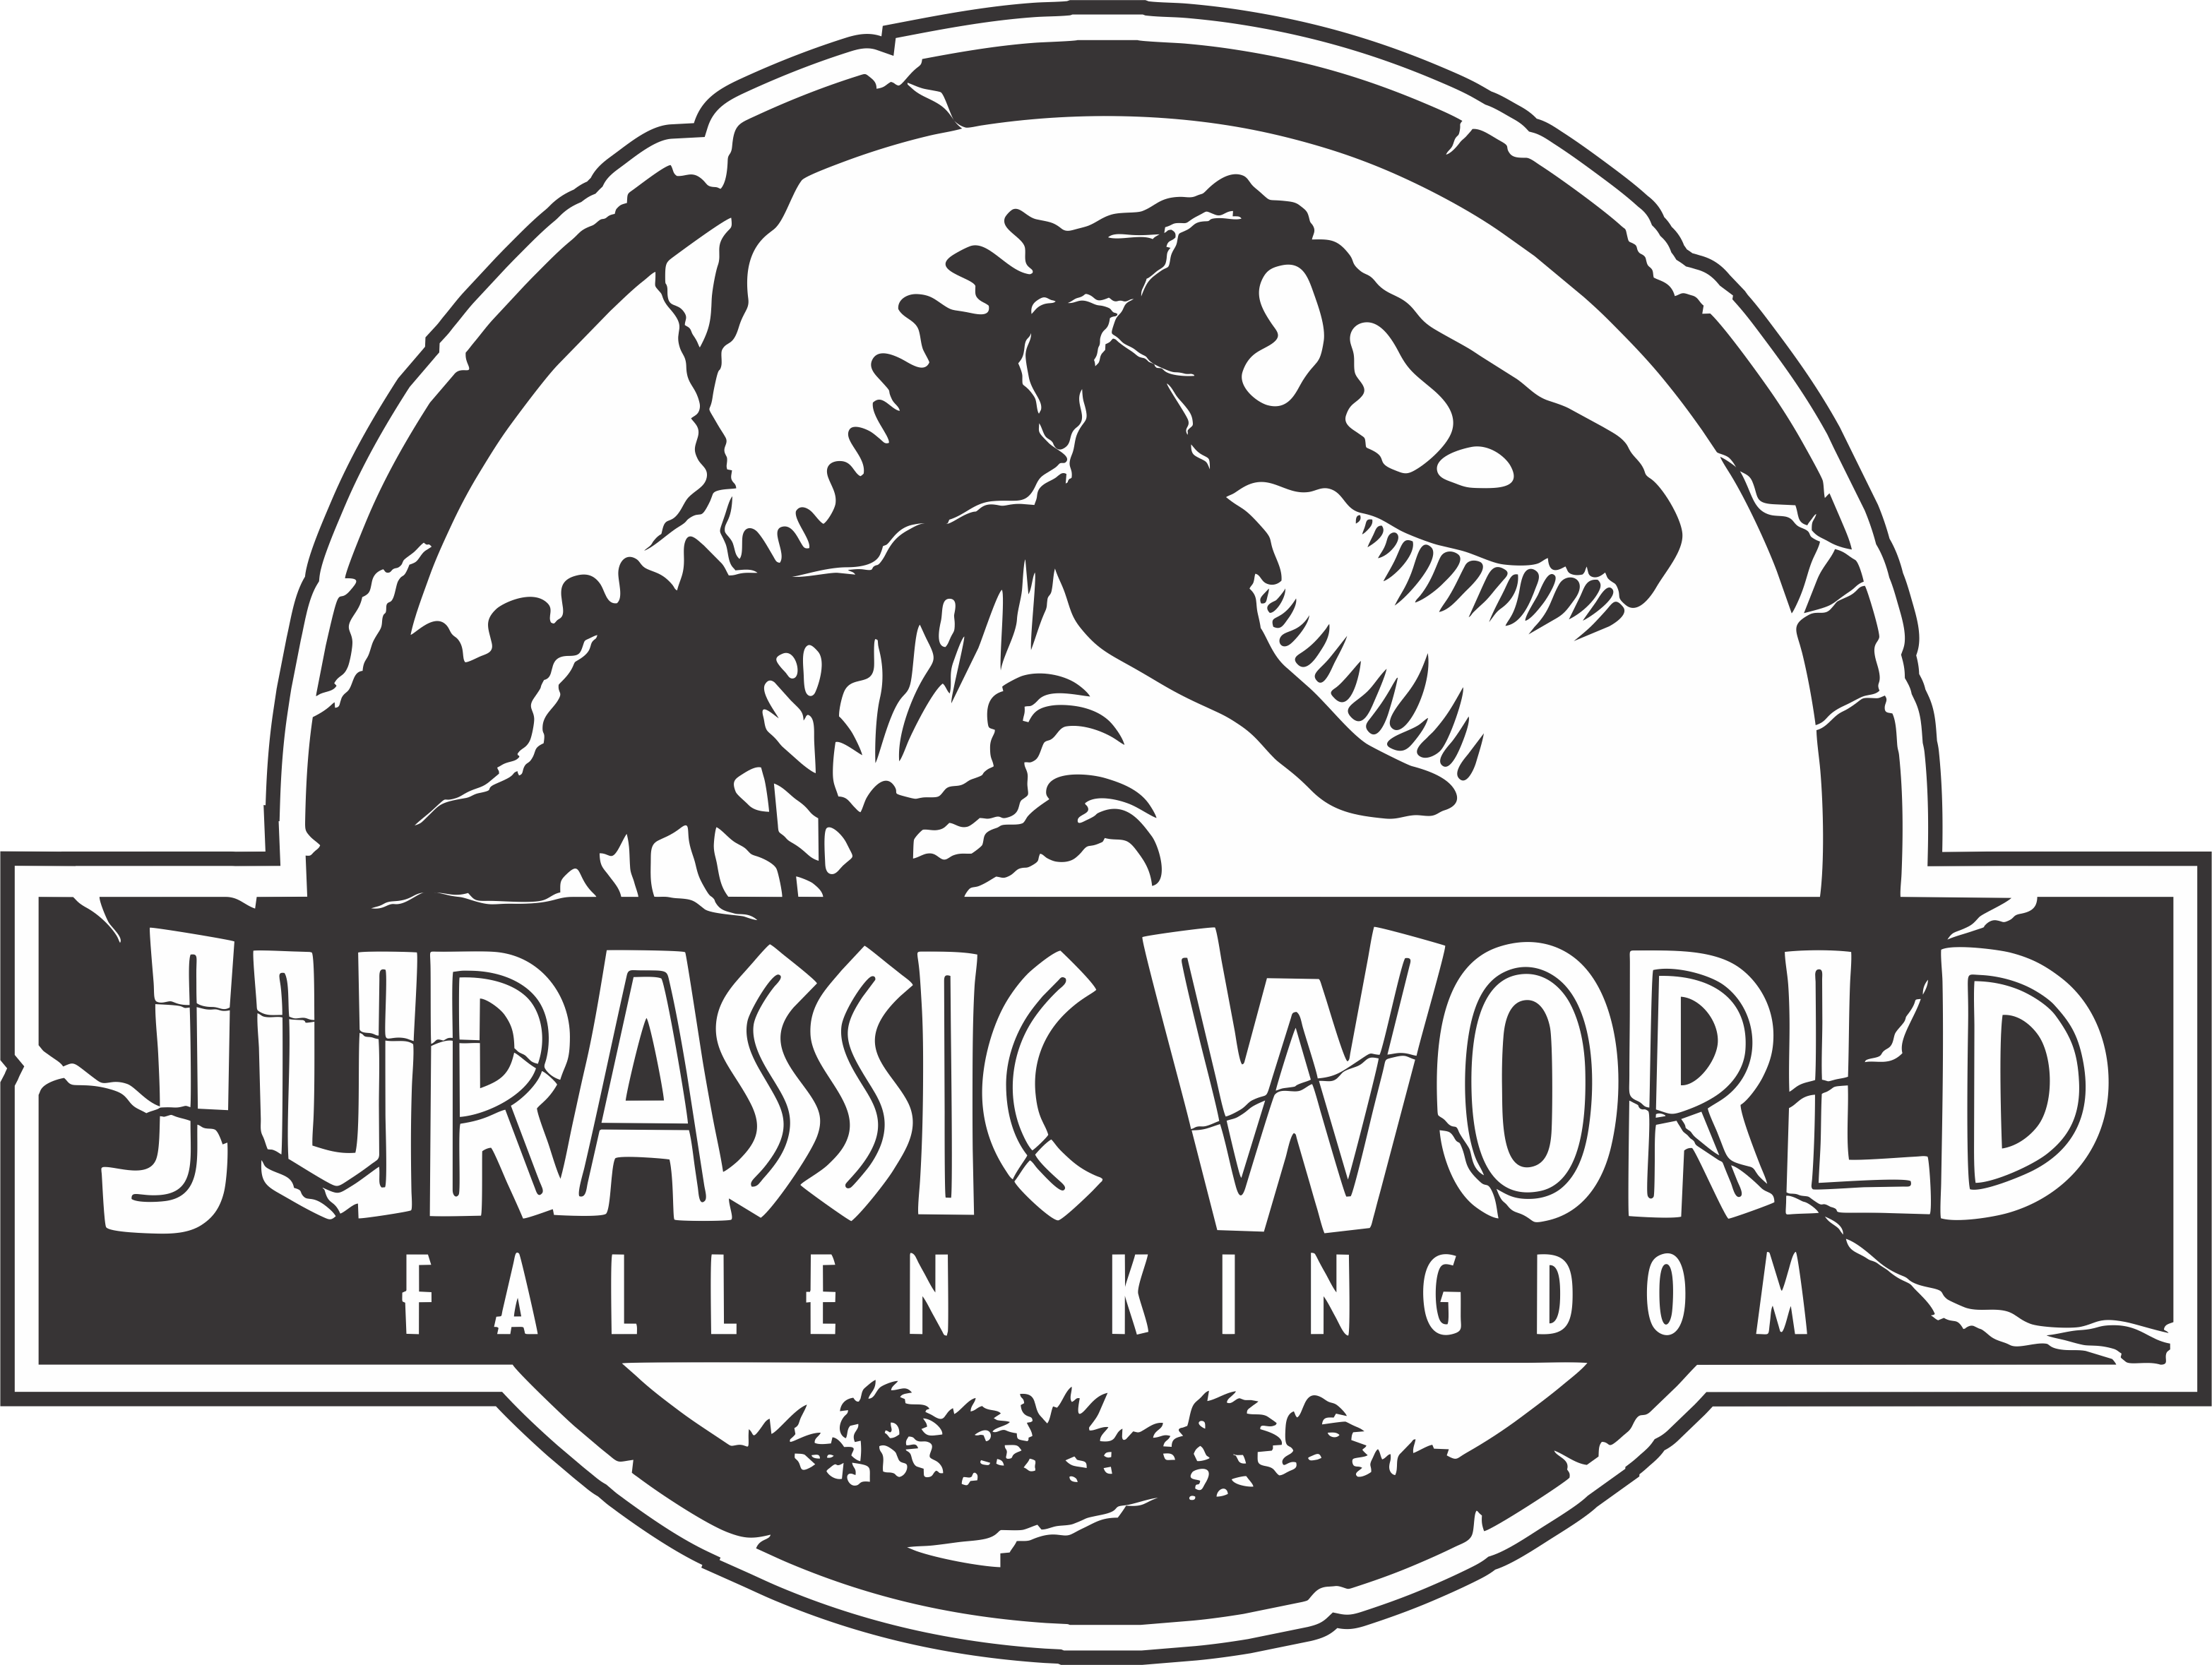 Jurassic world logo png. Fallen kingdom d designs